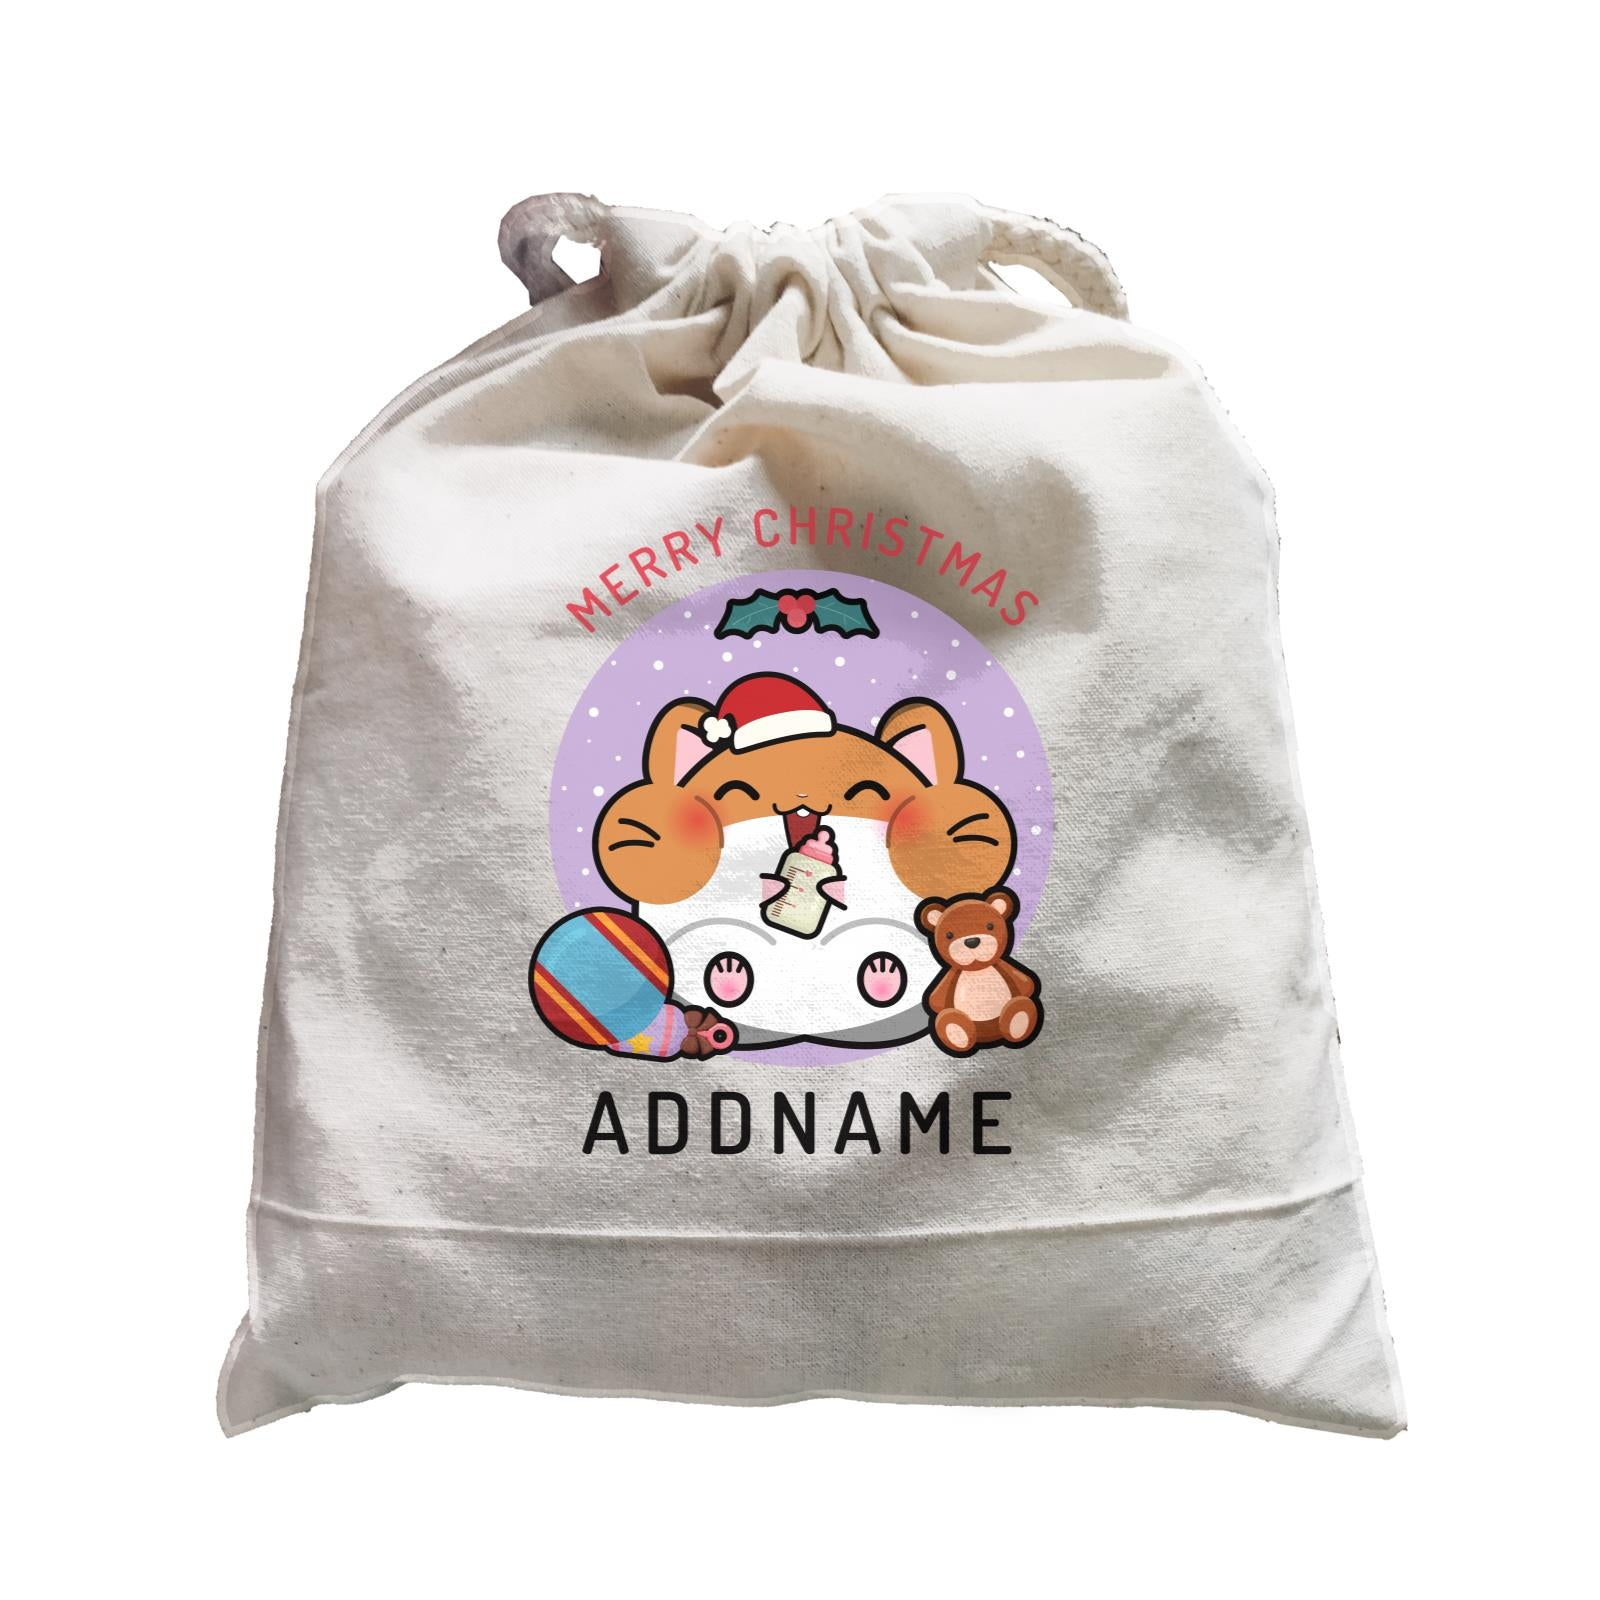 Merry Christmas Cute Santa Baby Hamster Satchel